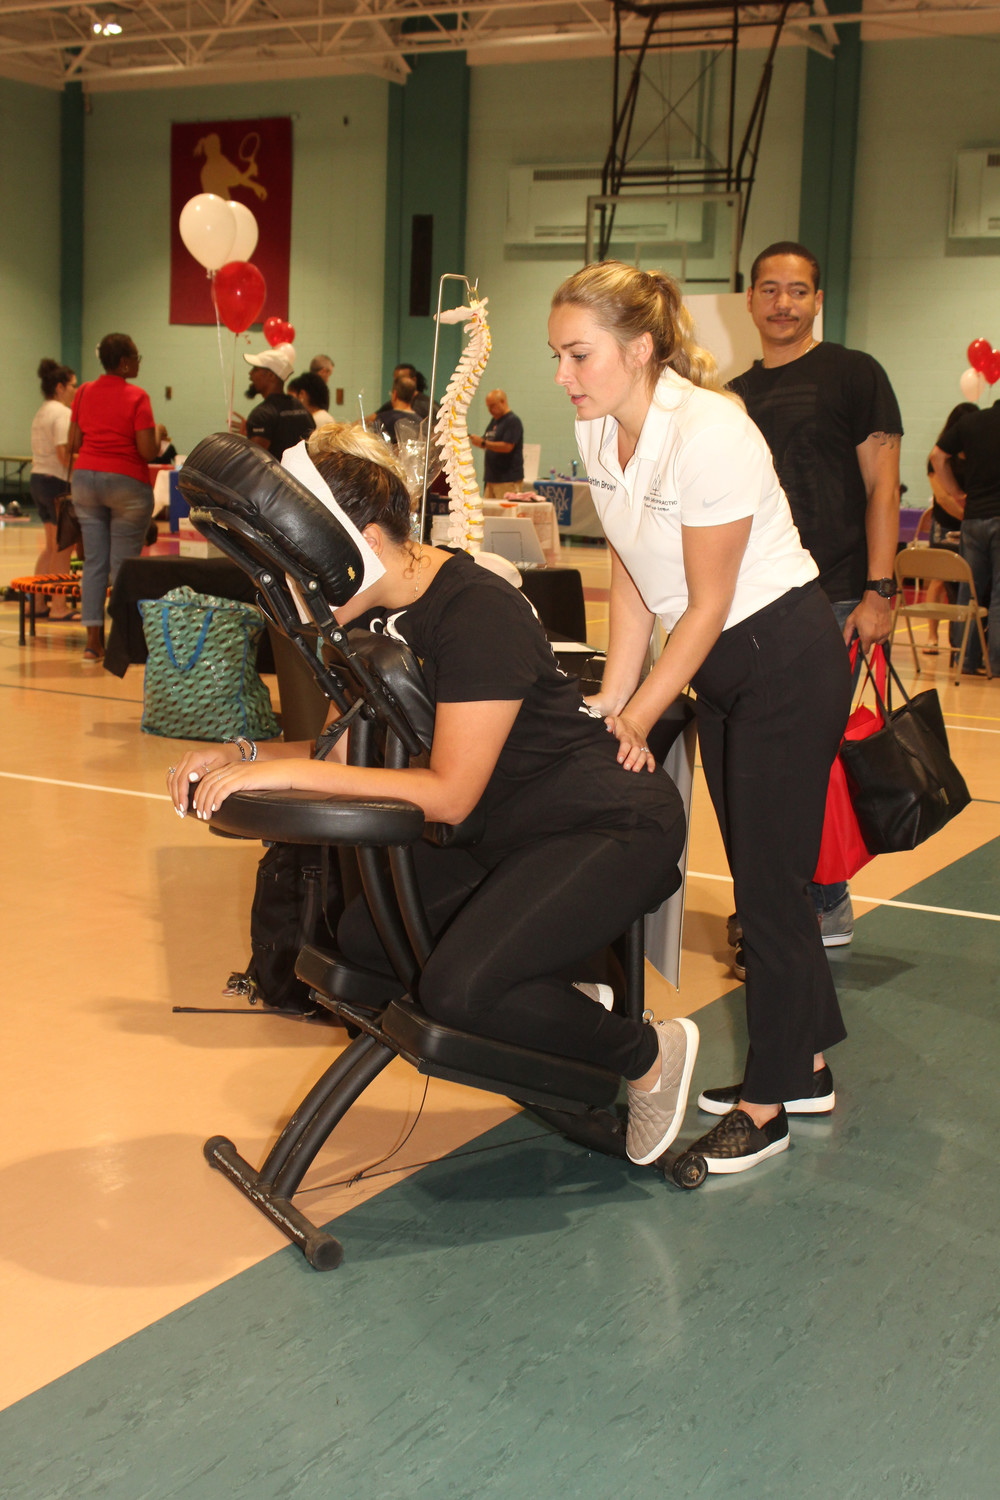 Dr. Caitlin C. Brown from Brown Chiropractic in Lynbrook helped an attendee release tension on her lower back during the health and wellness event.